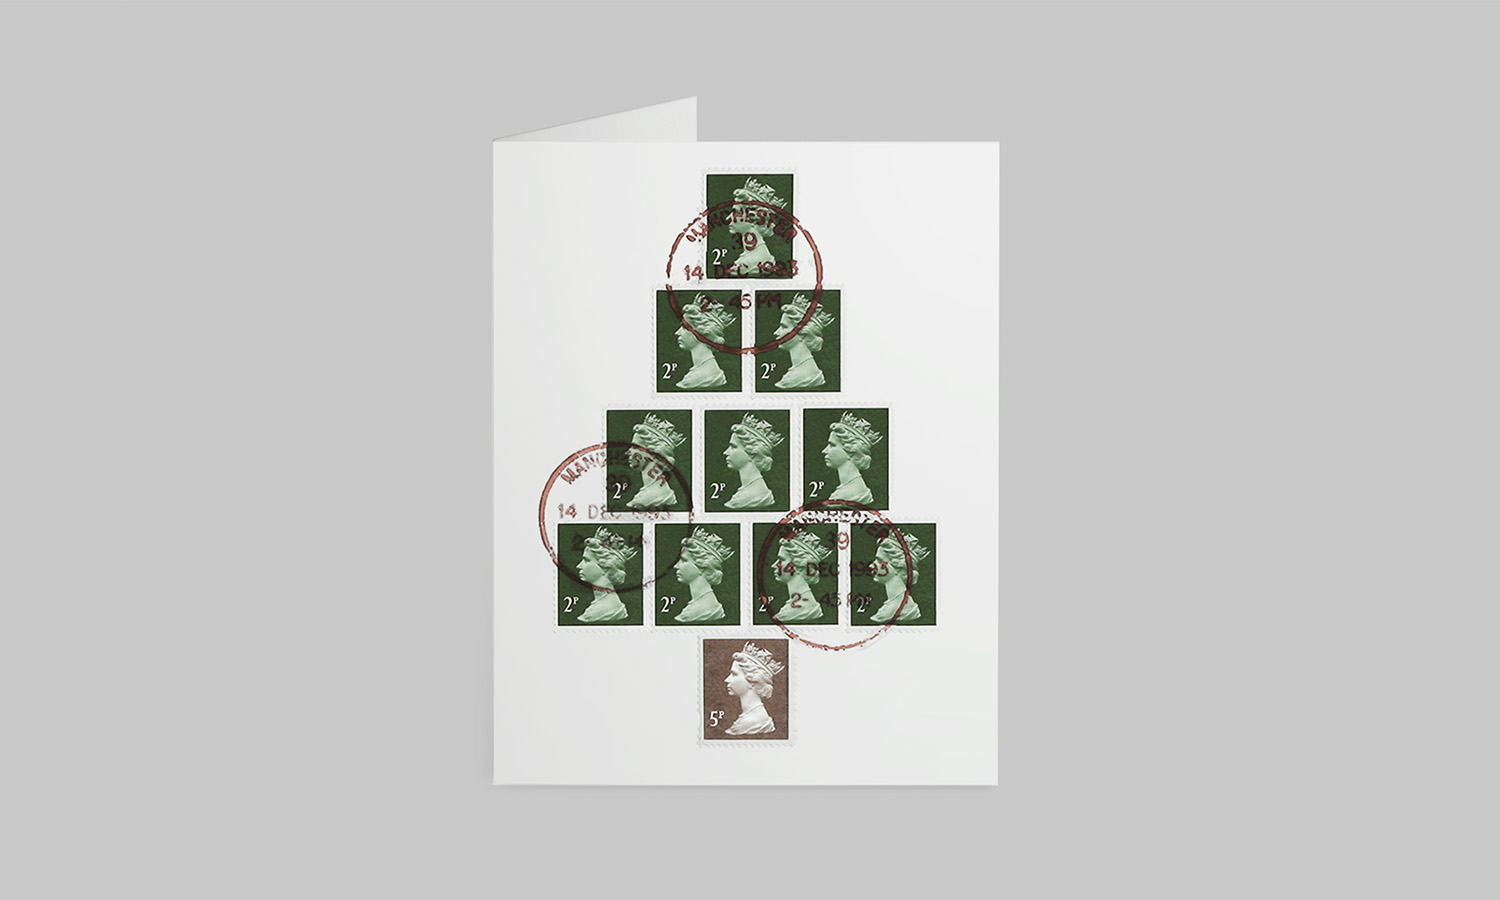 The Chase Christmas Card Stamp Design